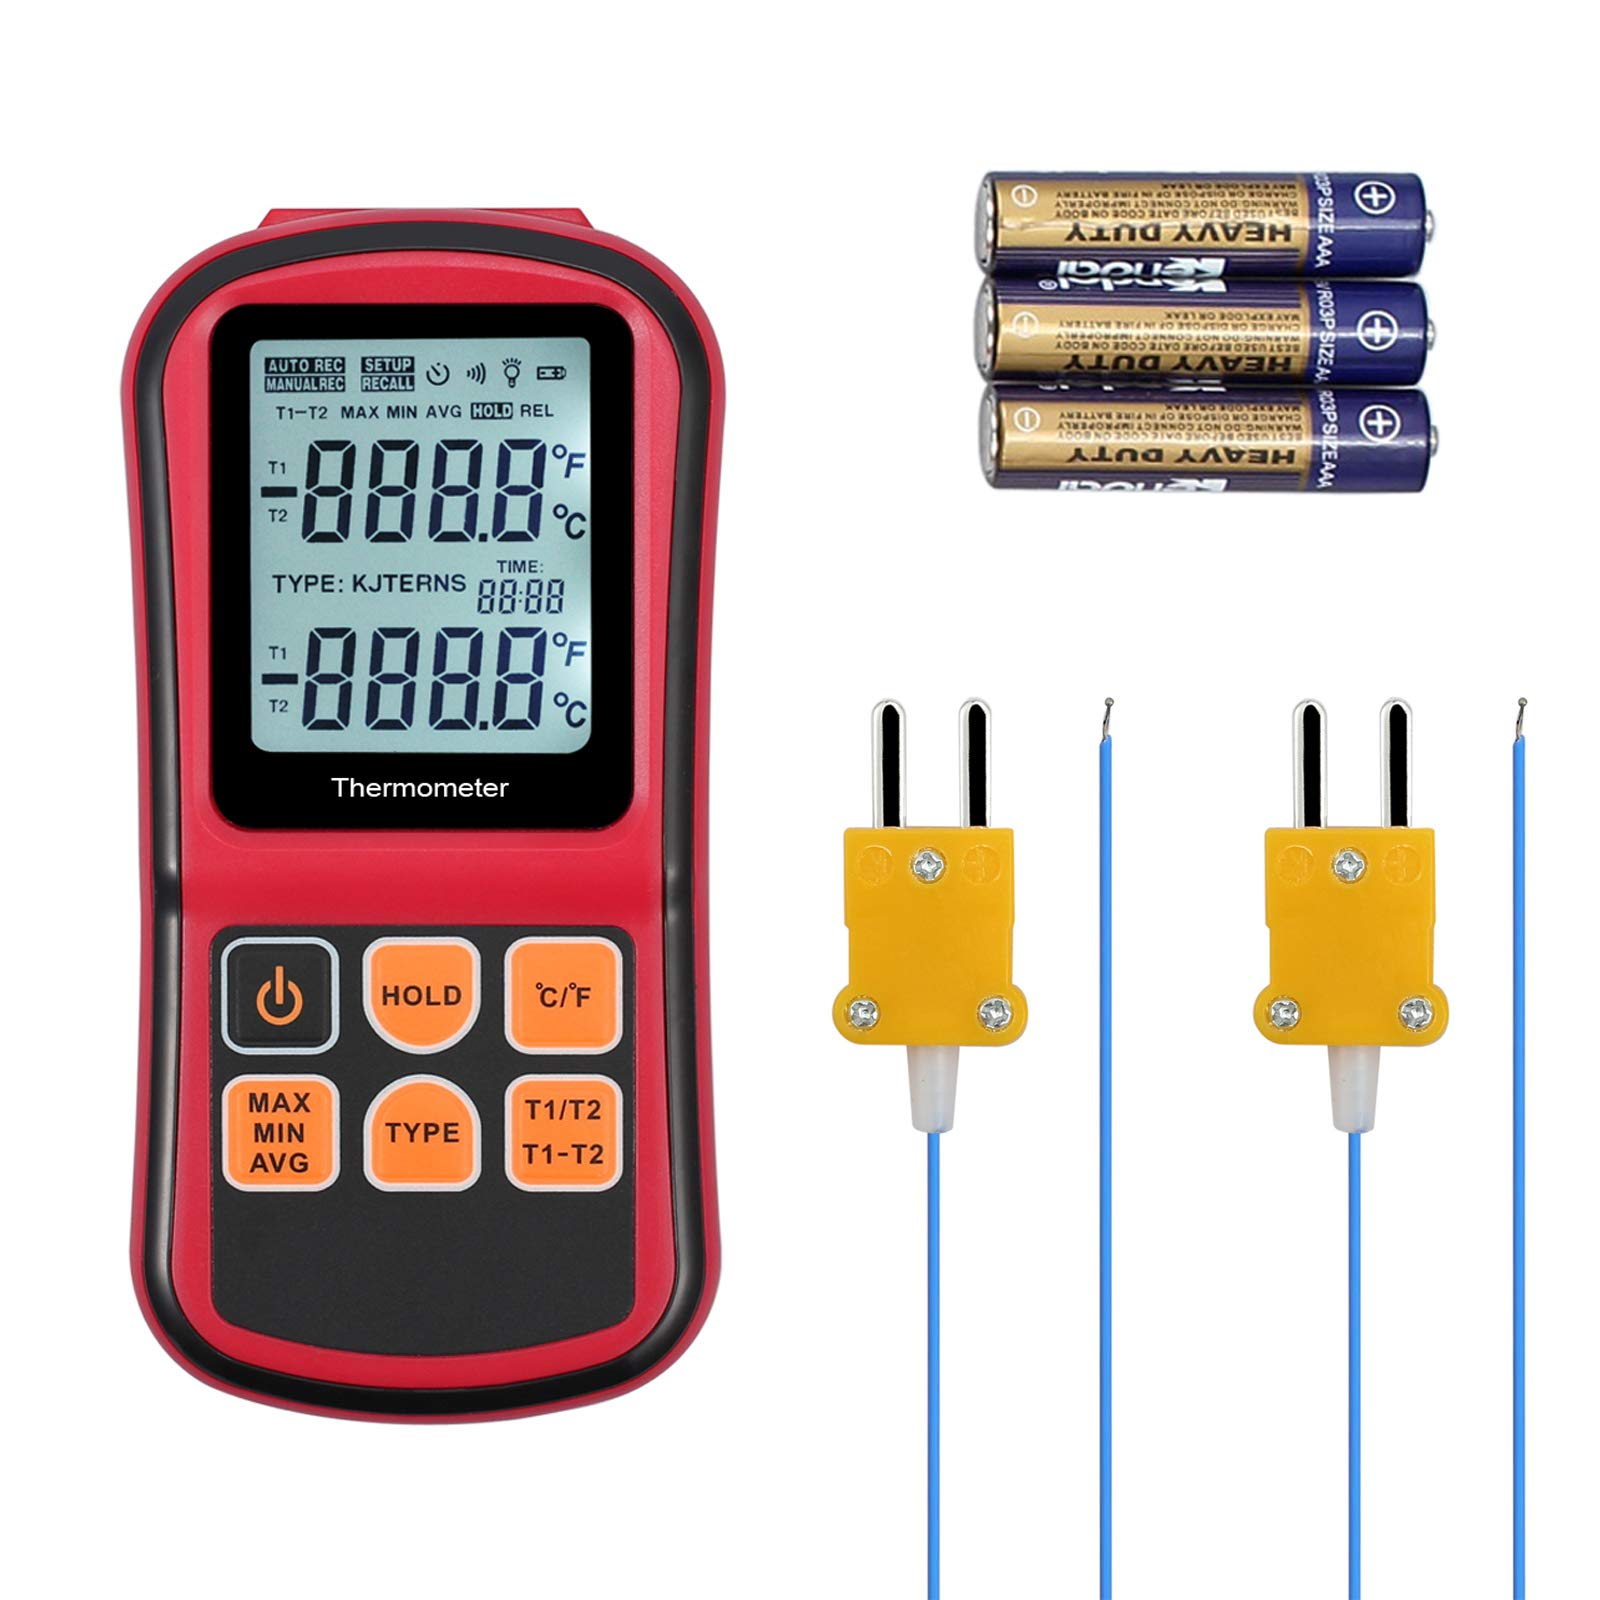 Justech Digital Thermocouple Thermometer Dual Channel LCD Backlight Temperature Meter Tester with Two K-Type Thermocouples